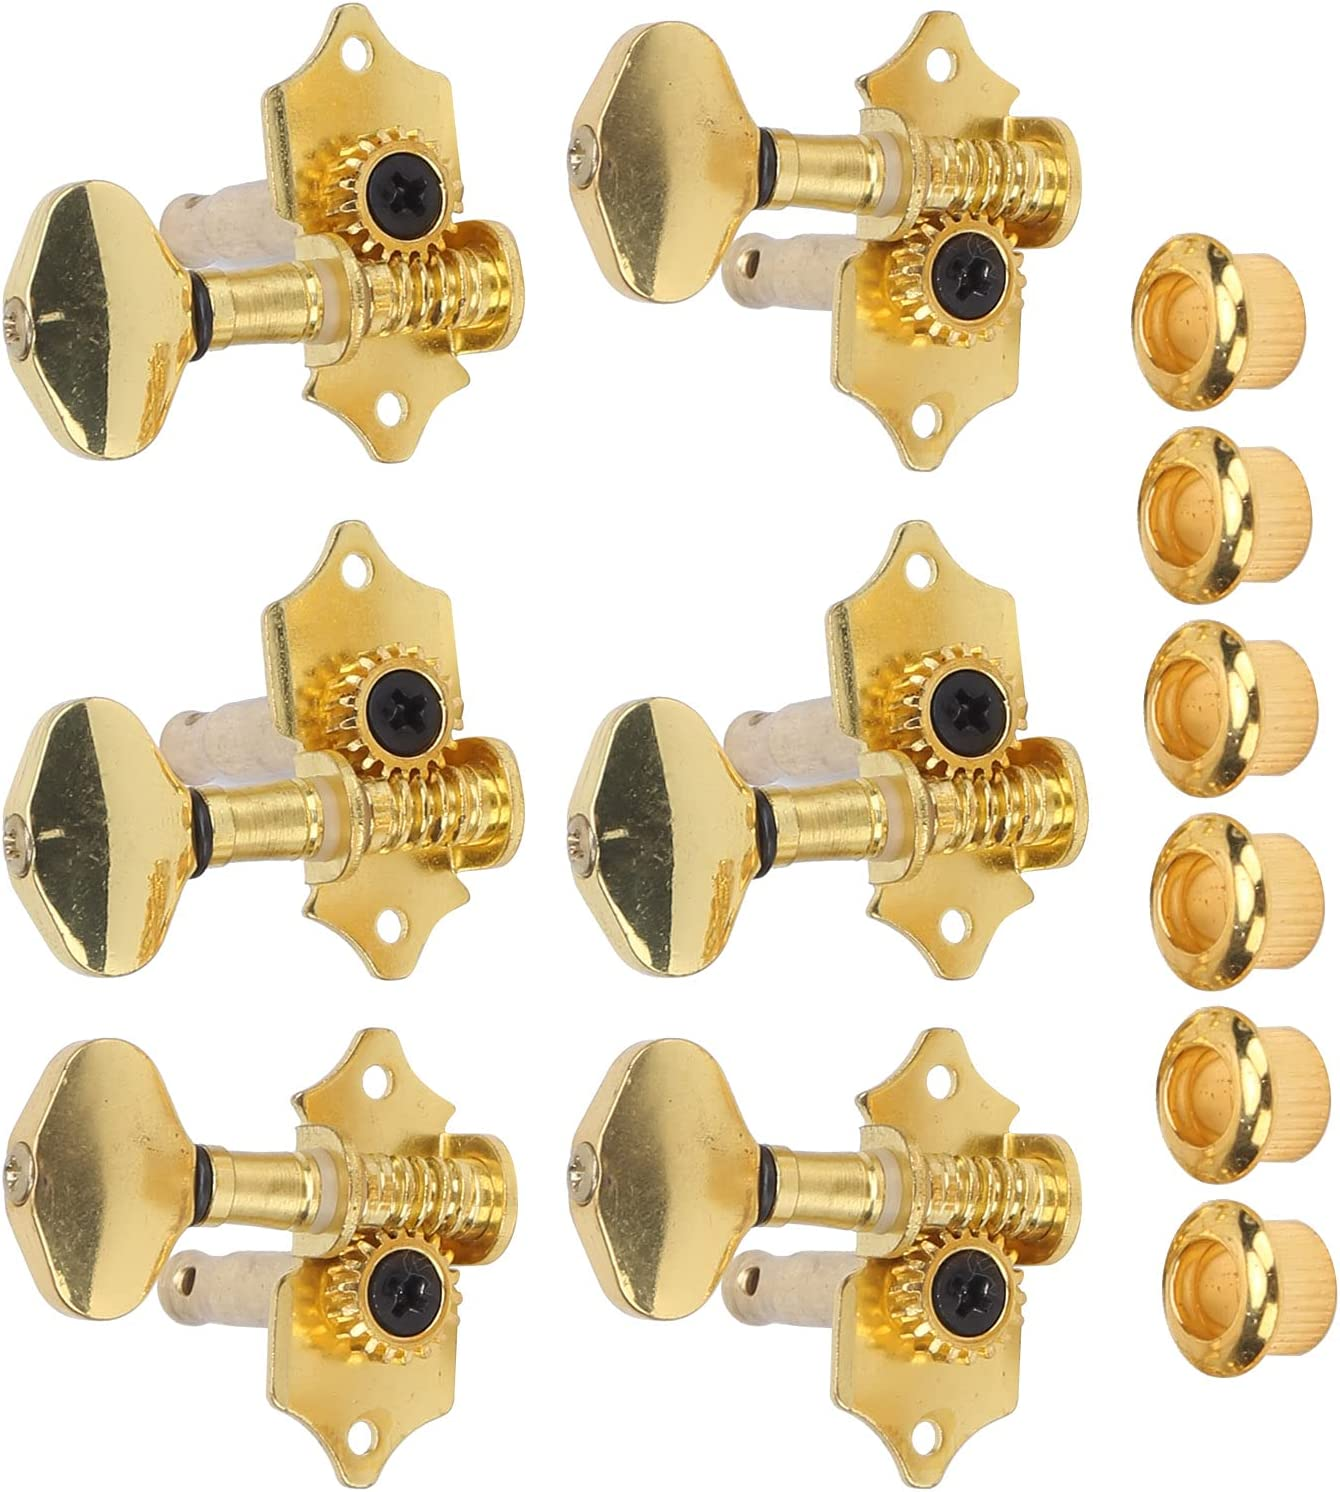 Guitar String Tuning Popular overseas Keys Precise gift Pegs Exquisite